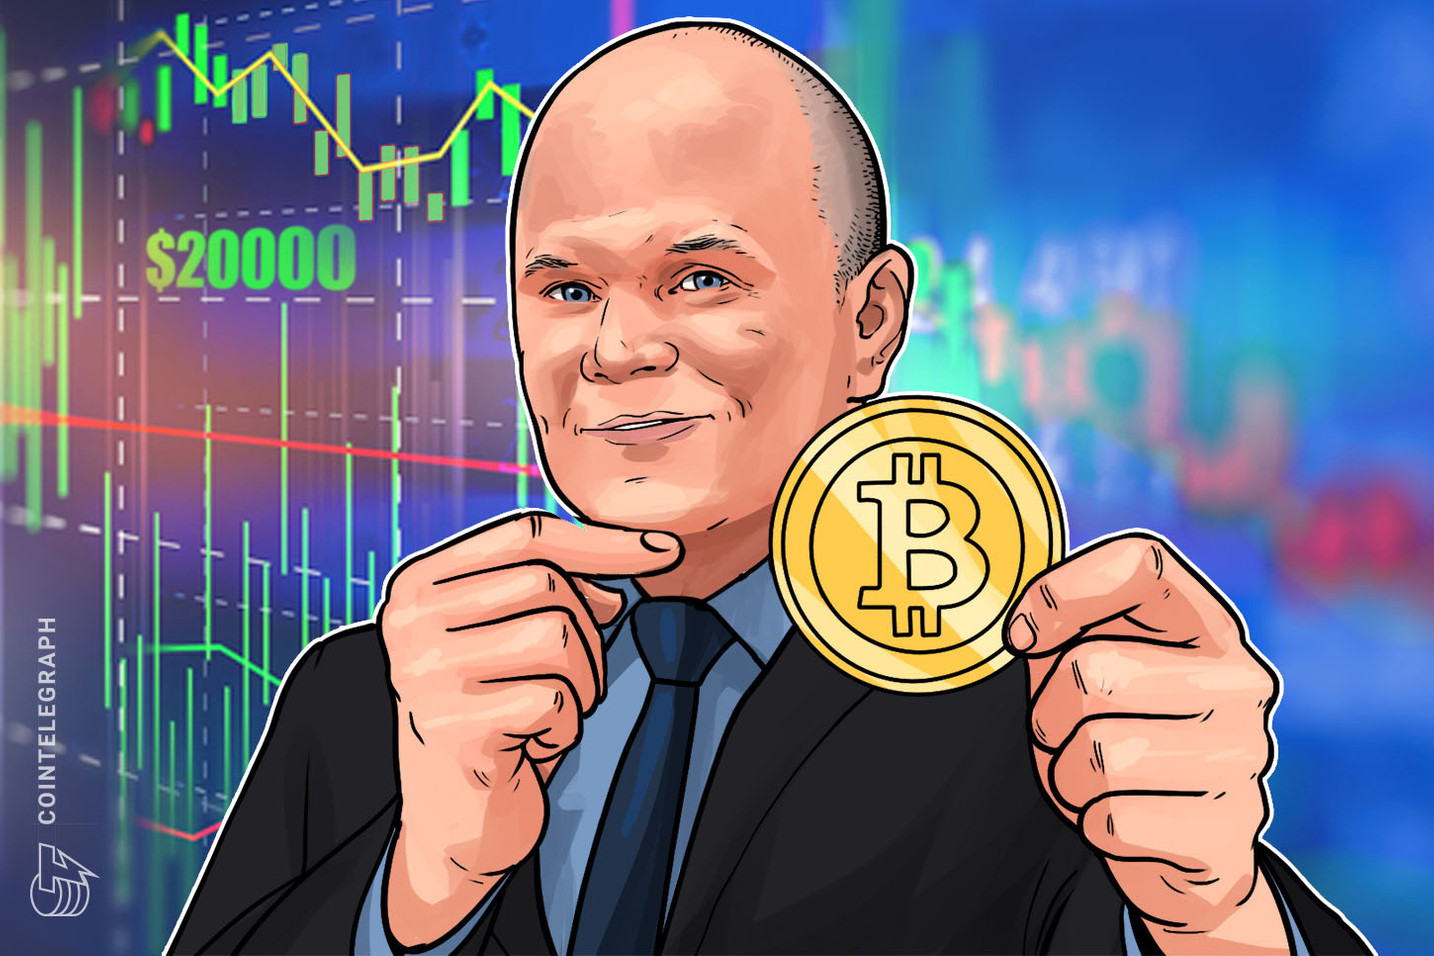 Galaxy Digital CEO Michael Novogratz: Bitcoin Should Cross $20,000 Within 18 Months